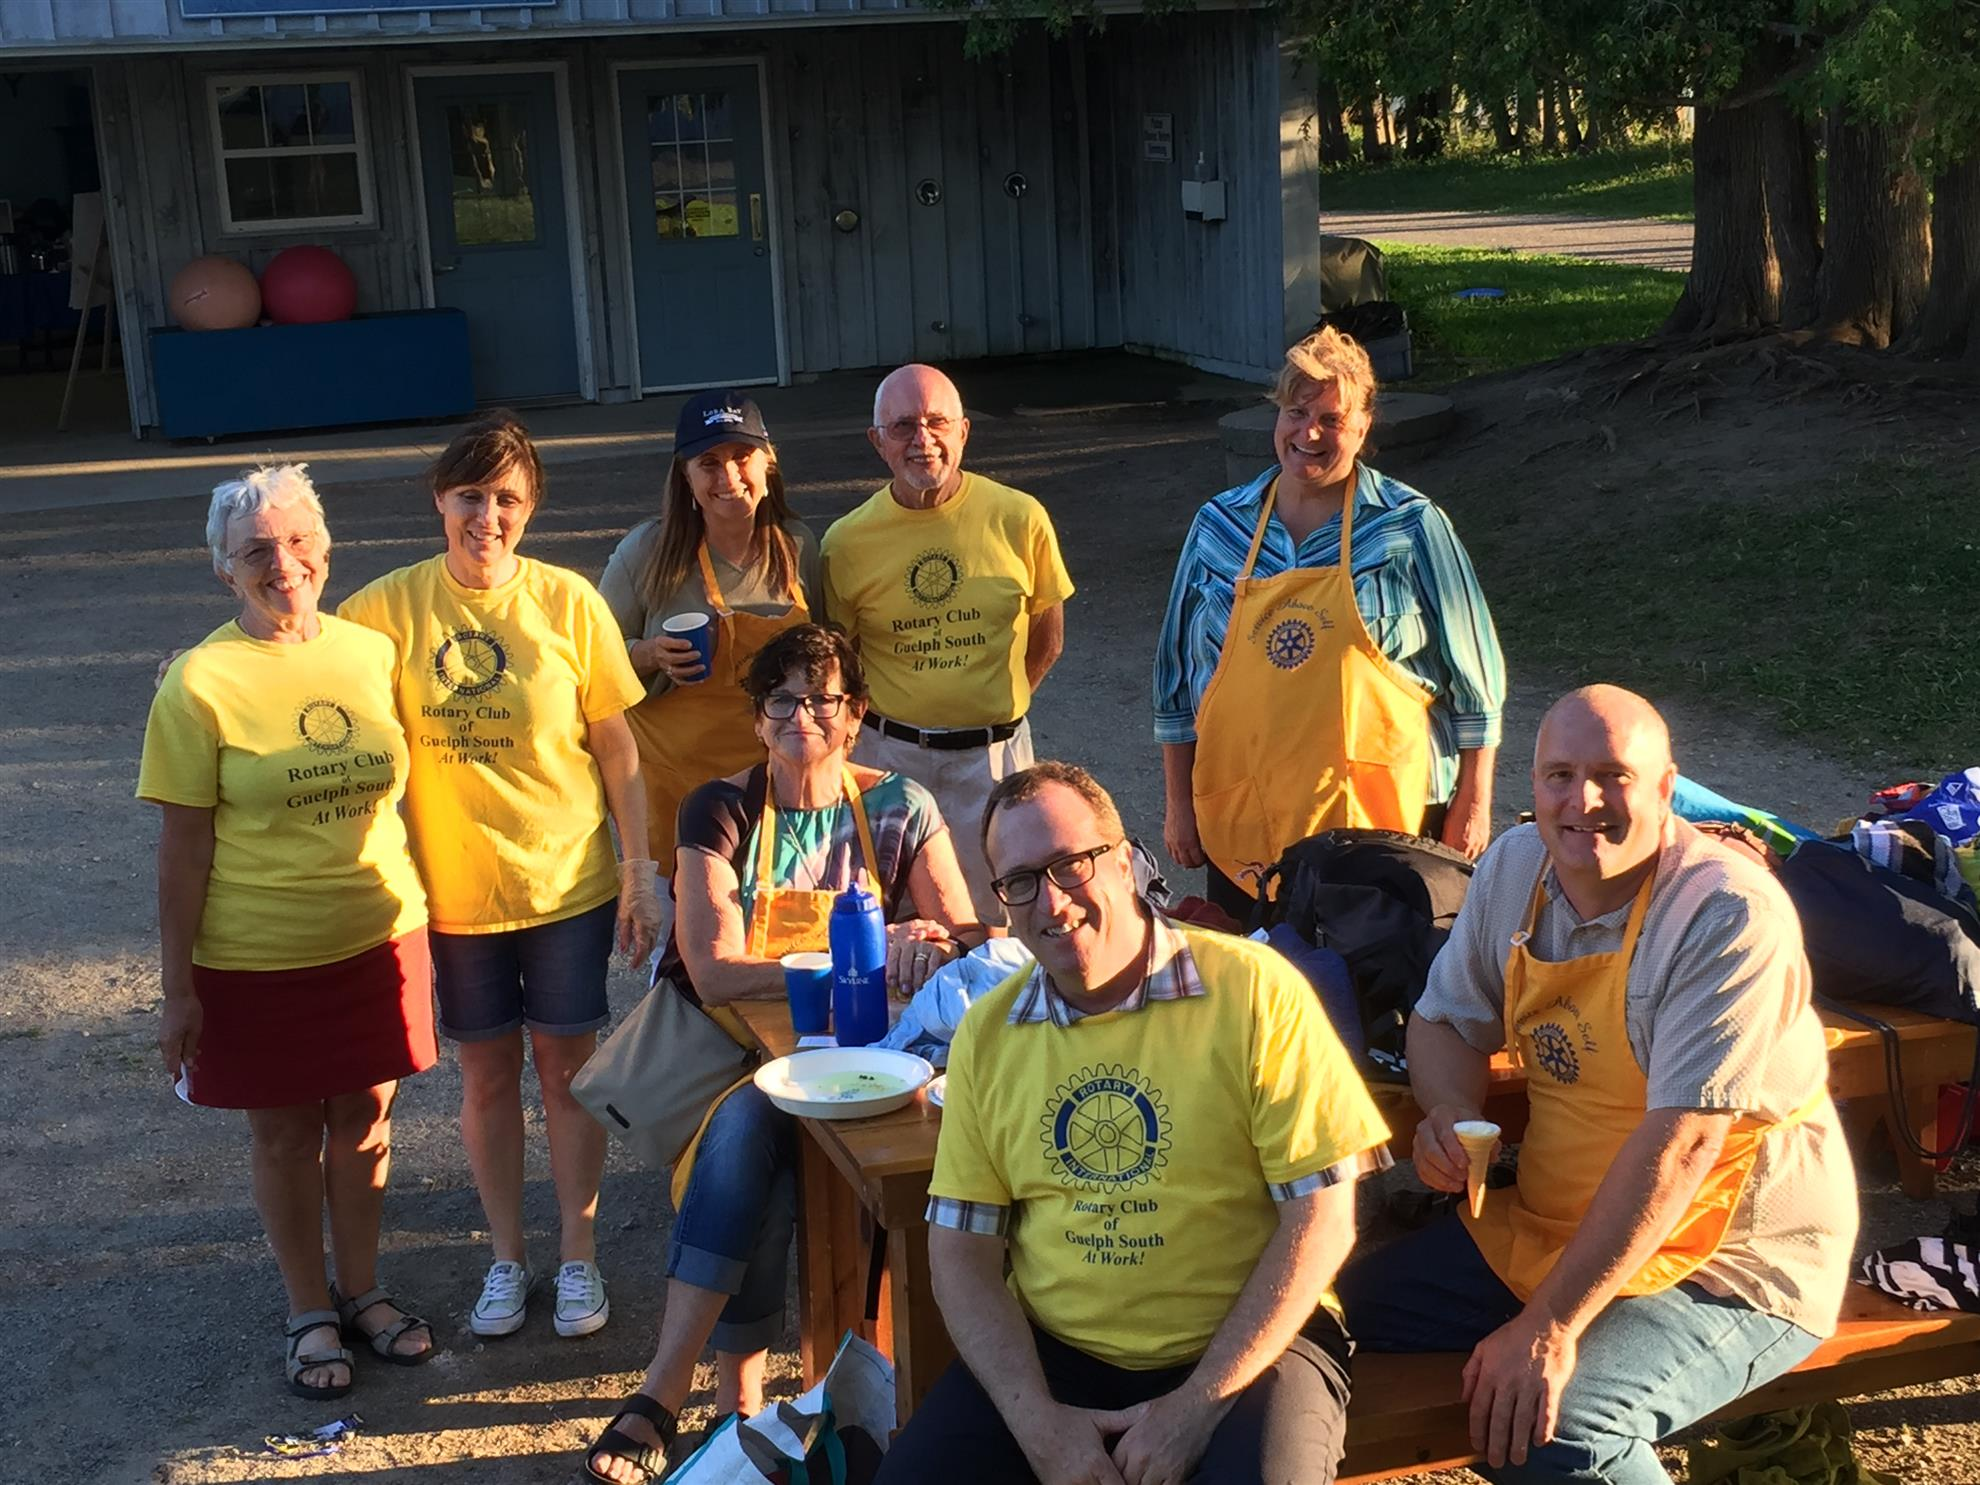 Rotary Club of Guelph South volunteers